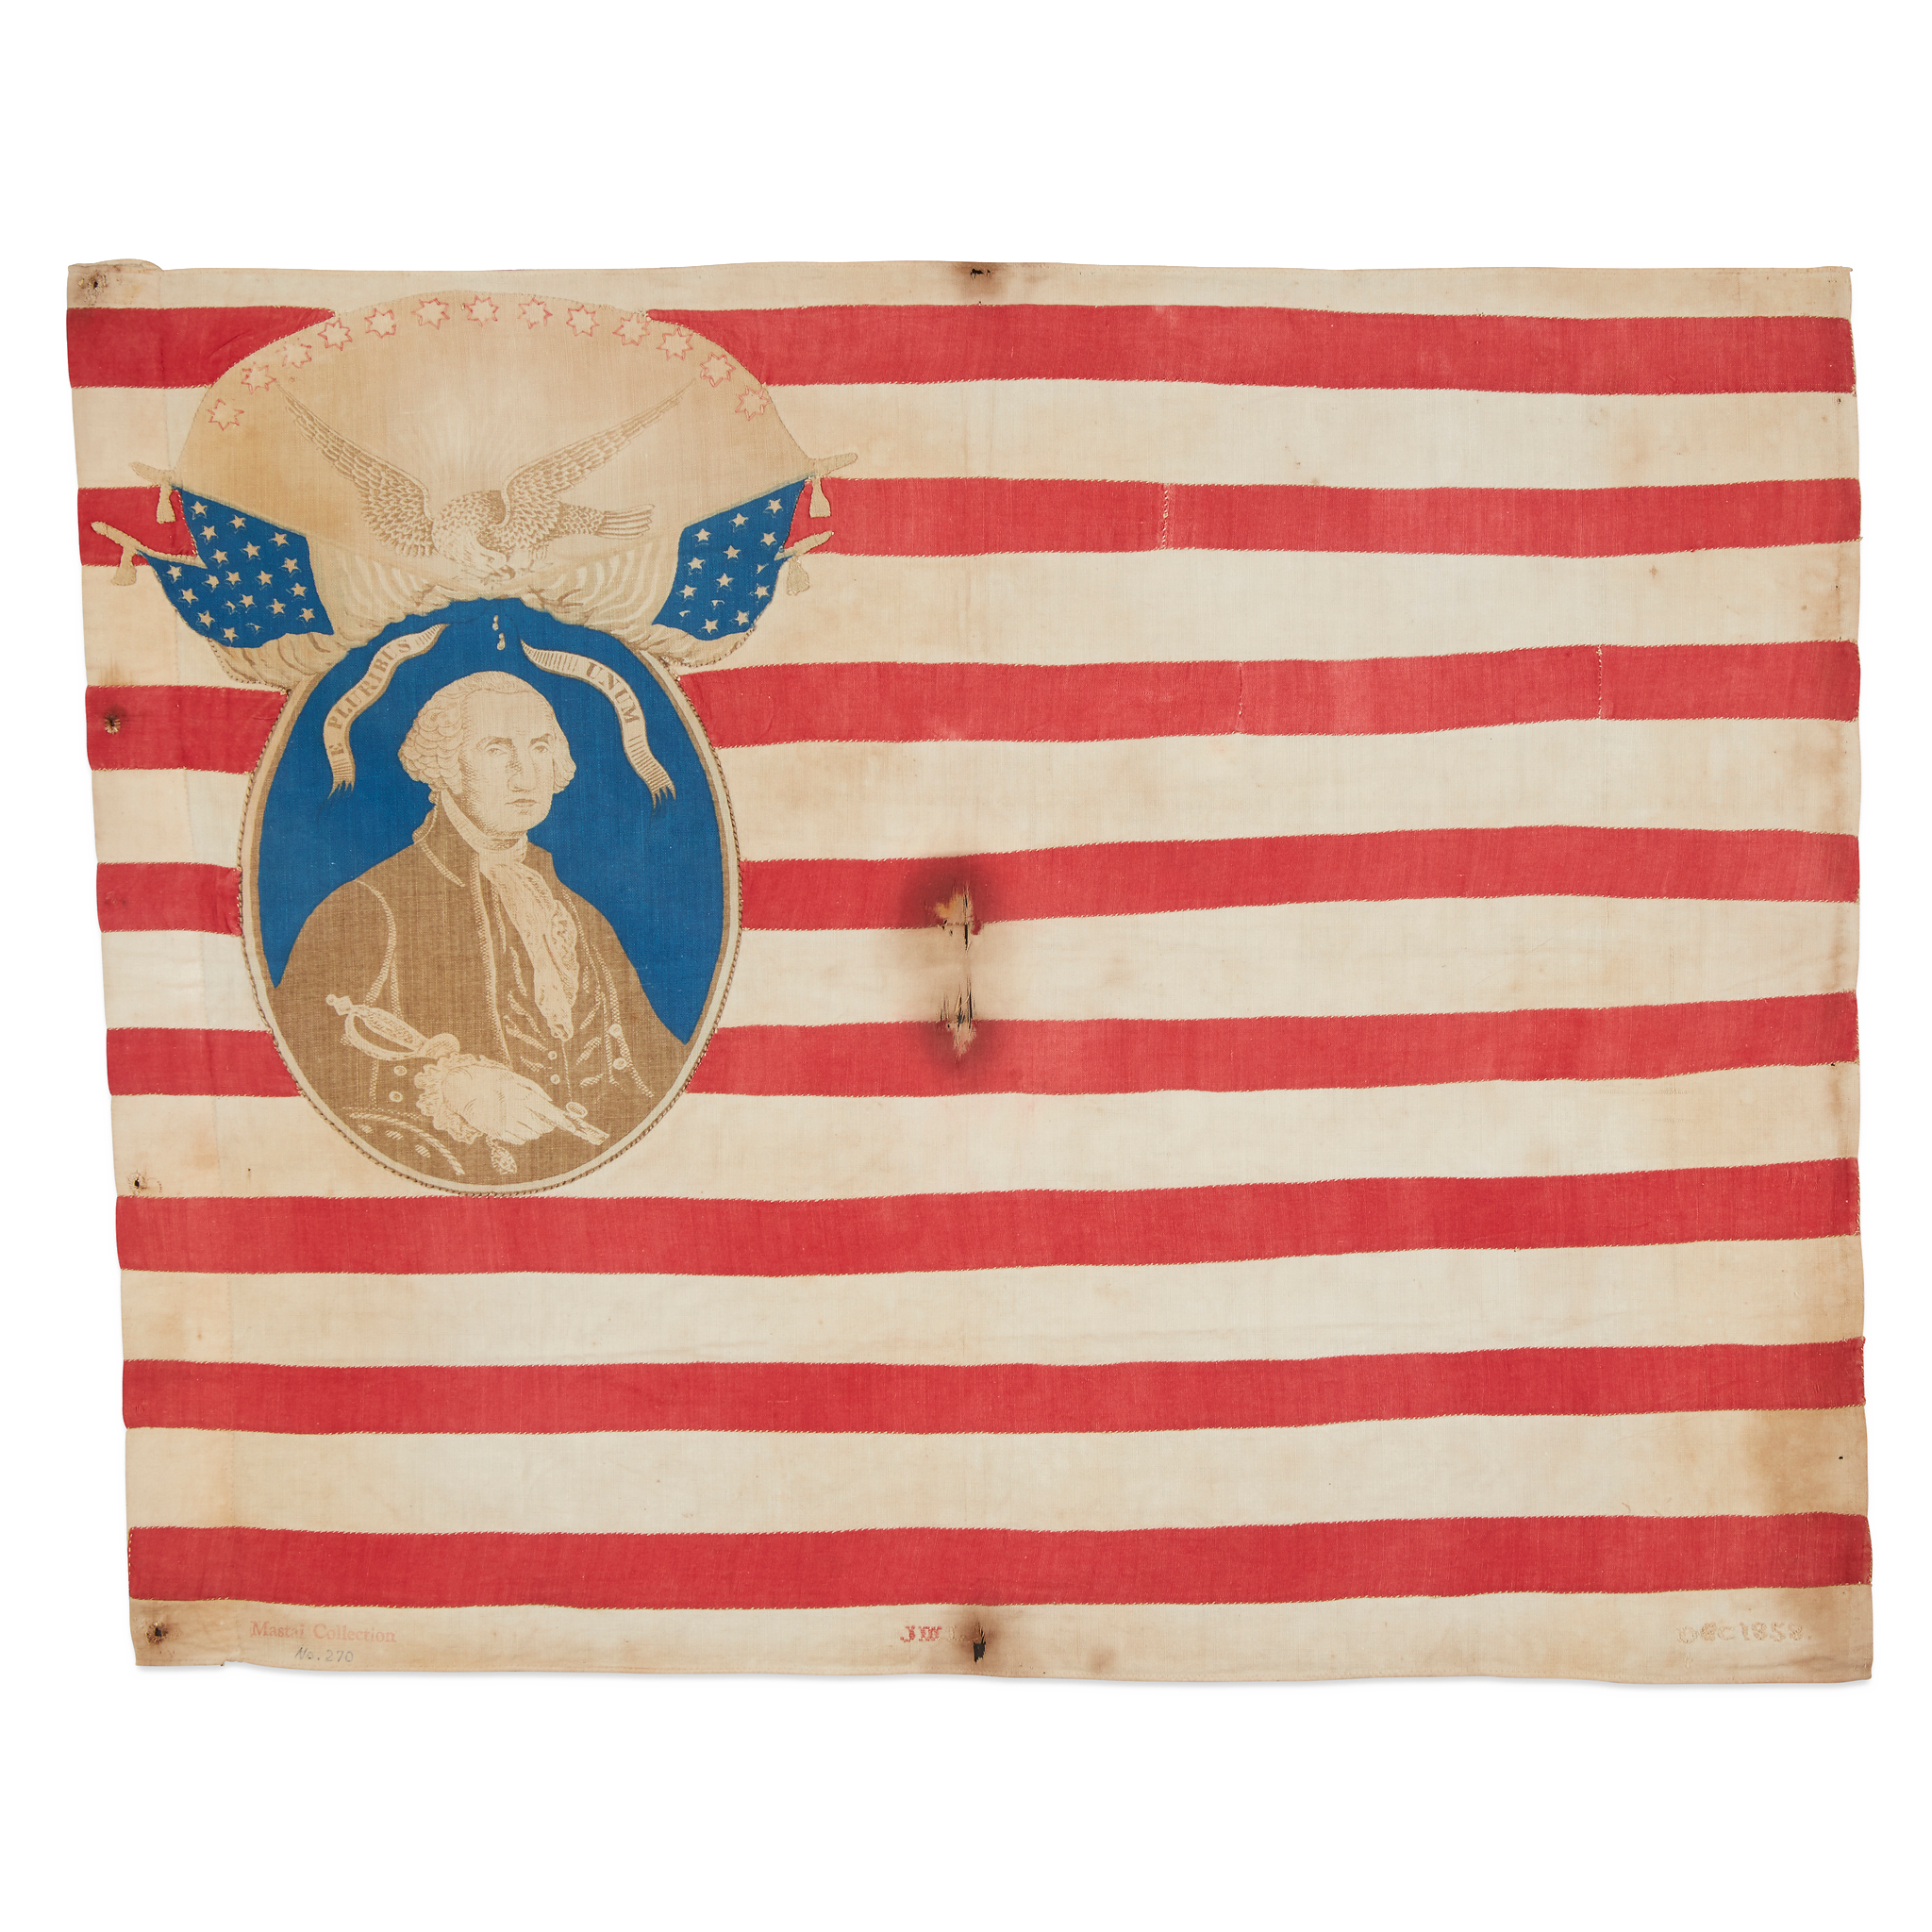 Lot 39 | A 'Know Nothing' American Flag, dated,